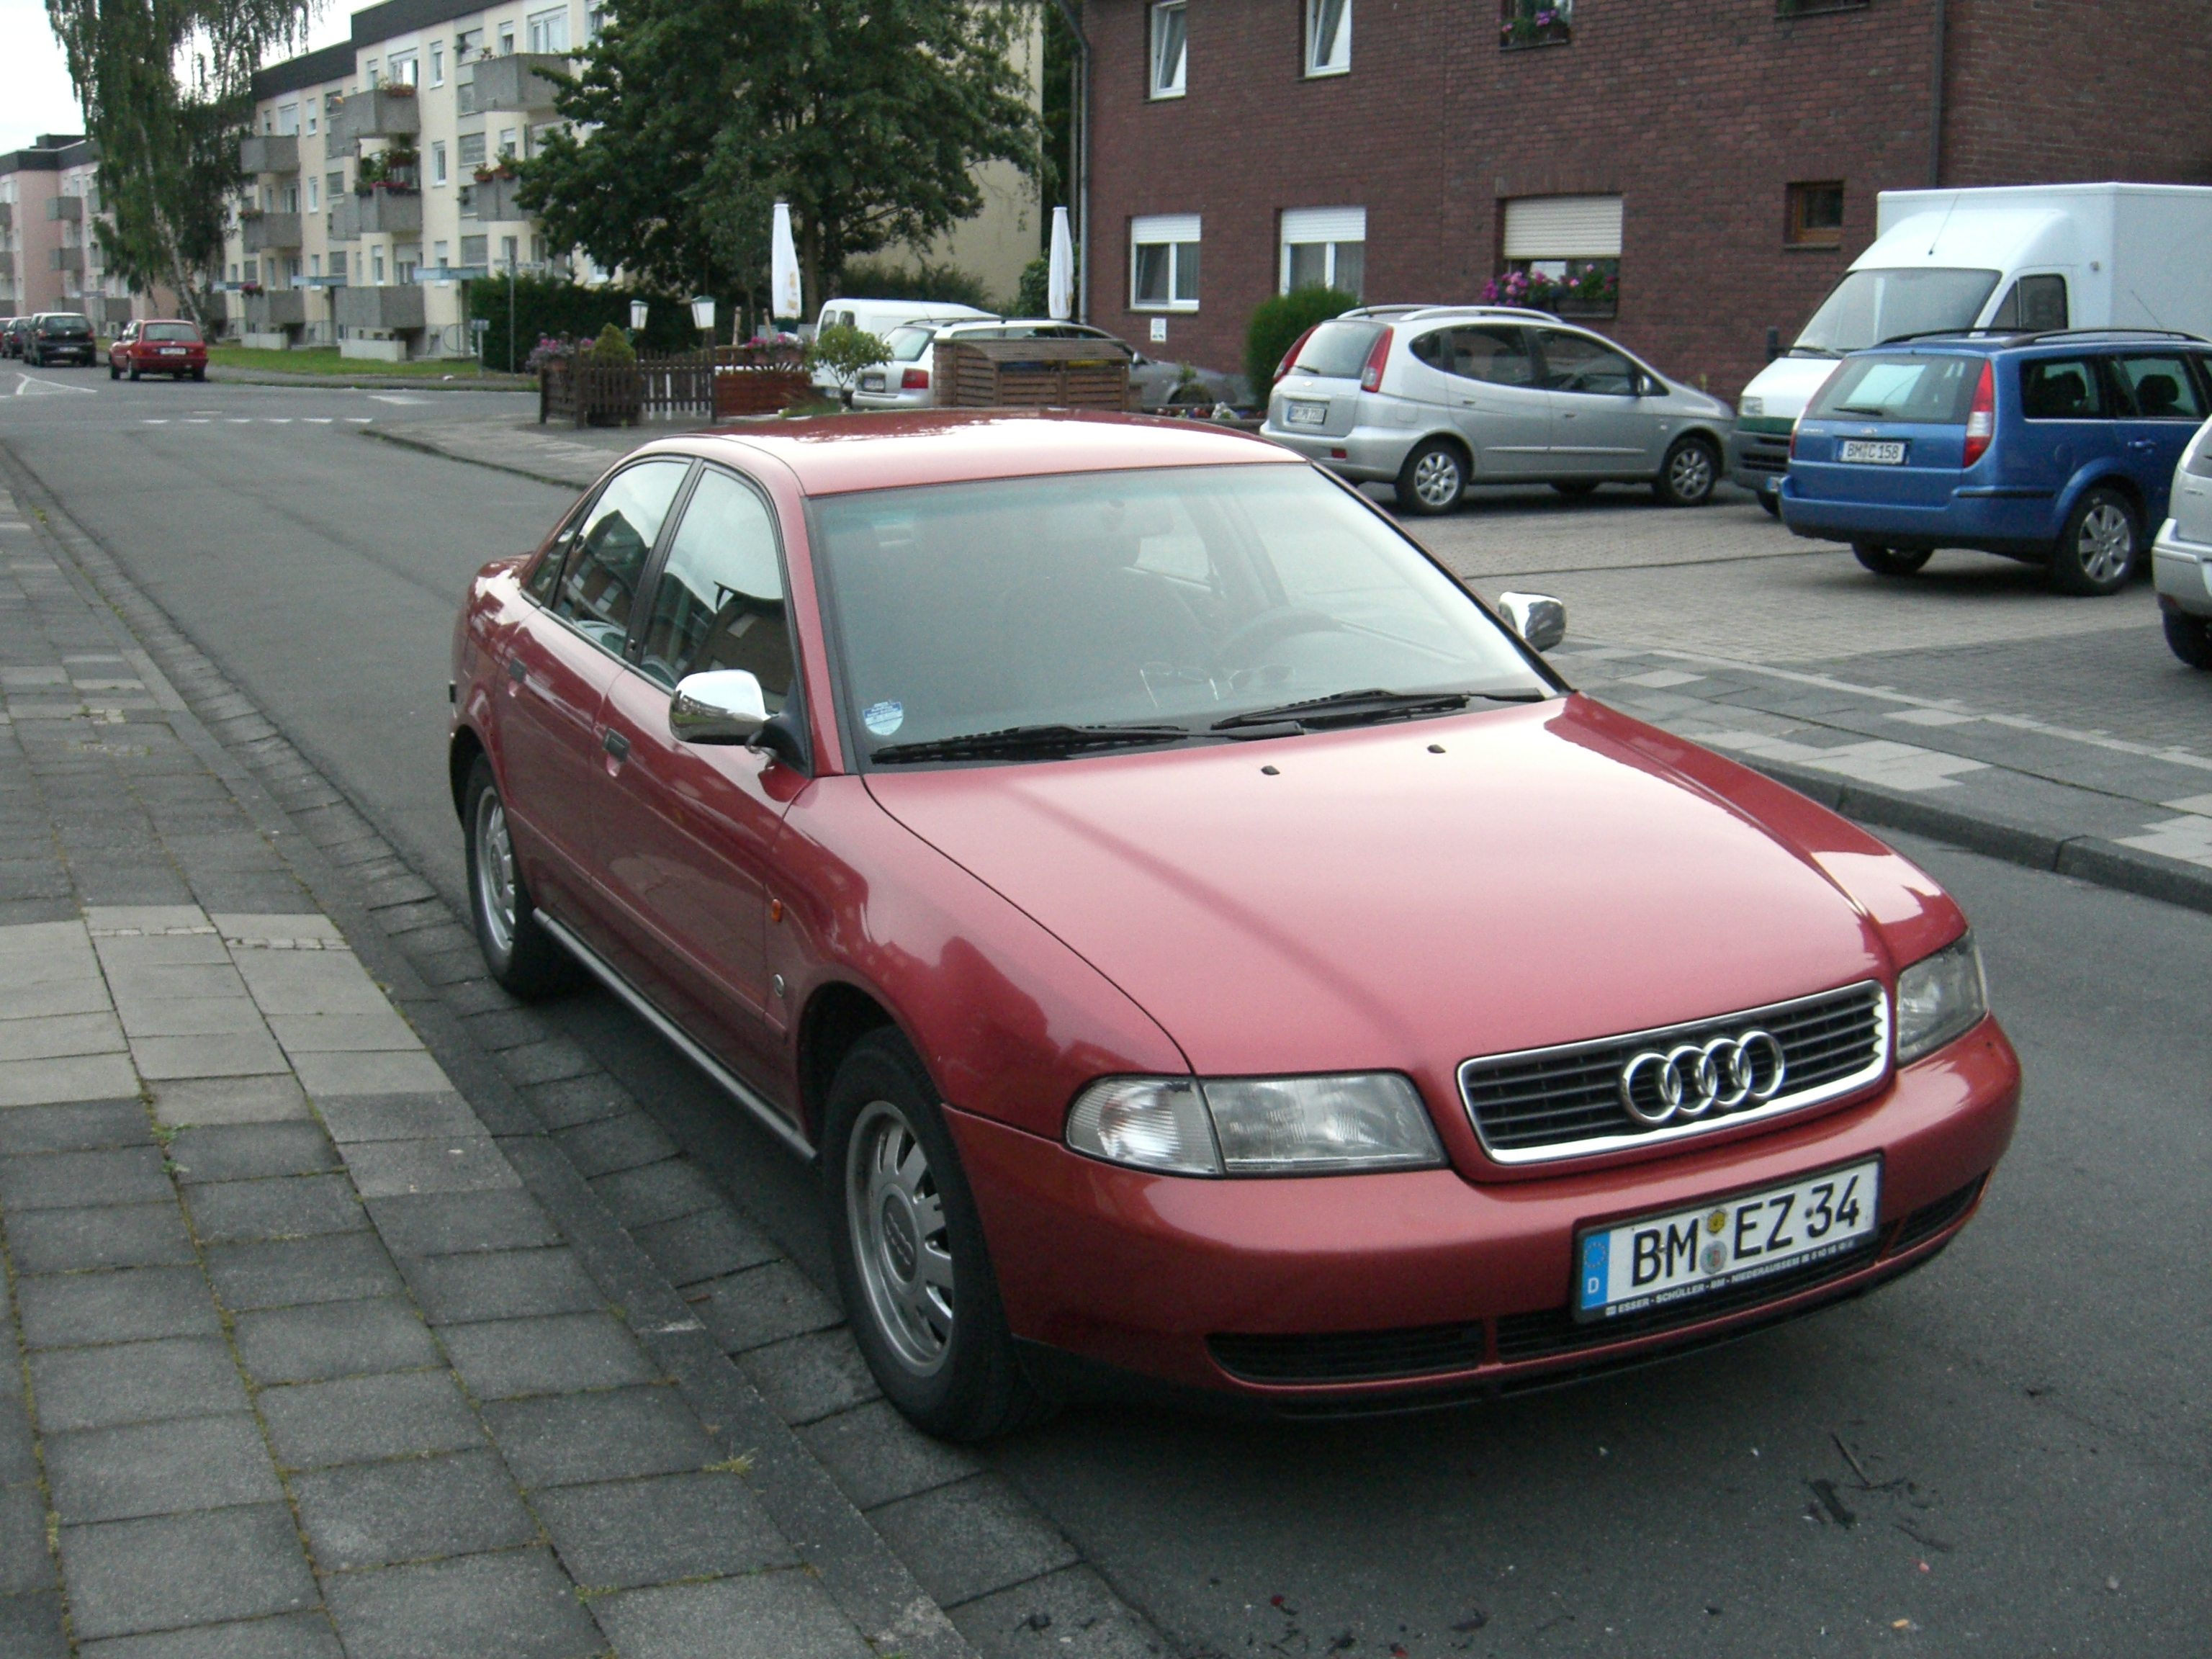 a3-tuning 1995 Audi A4 13249100